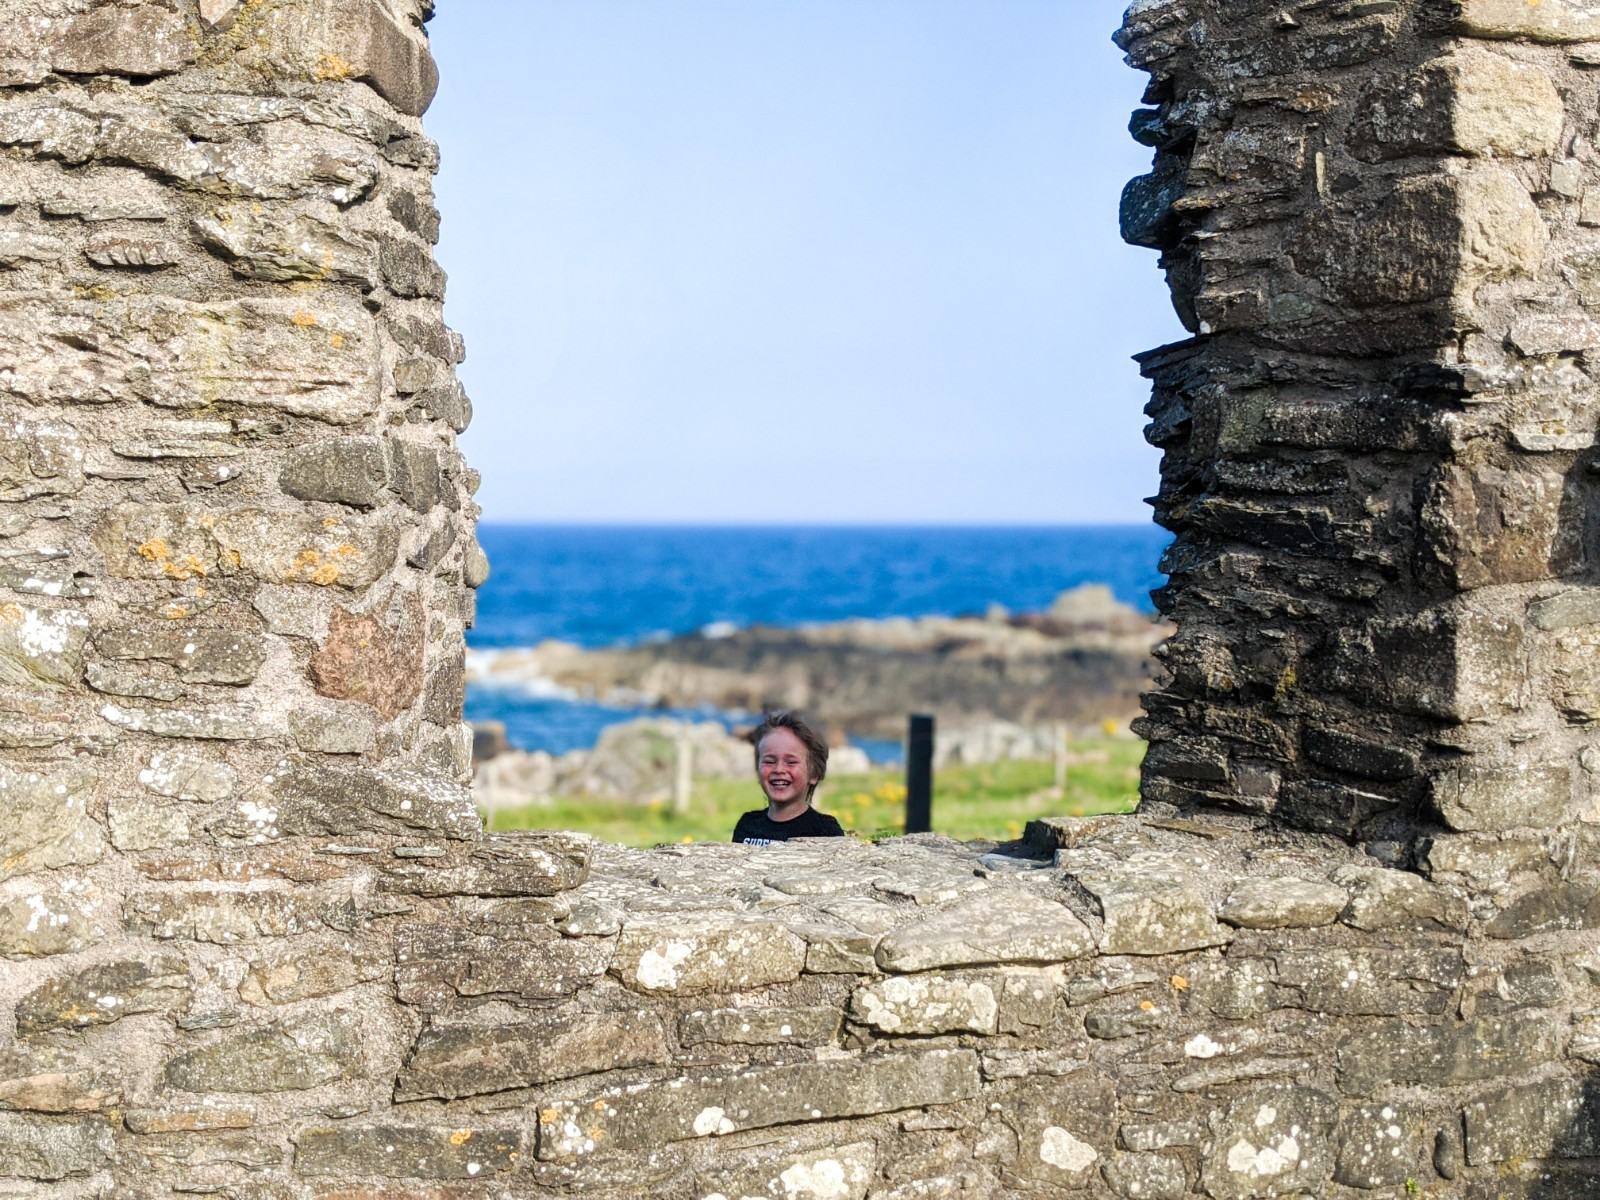 Dexter peeking through St Ninian's Chapel window with the sea behind him